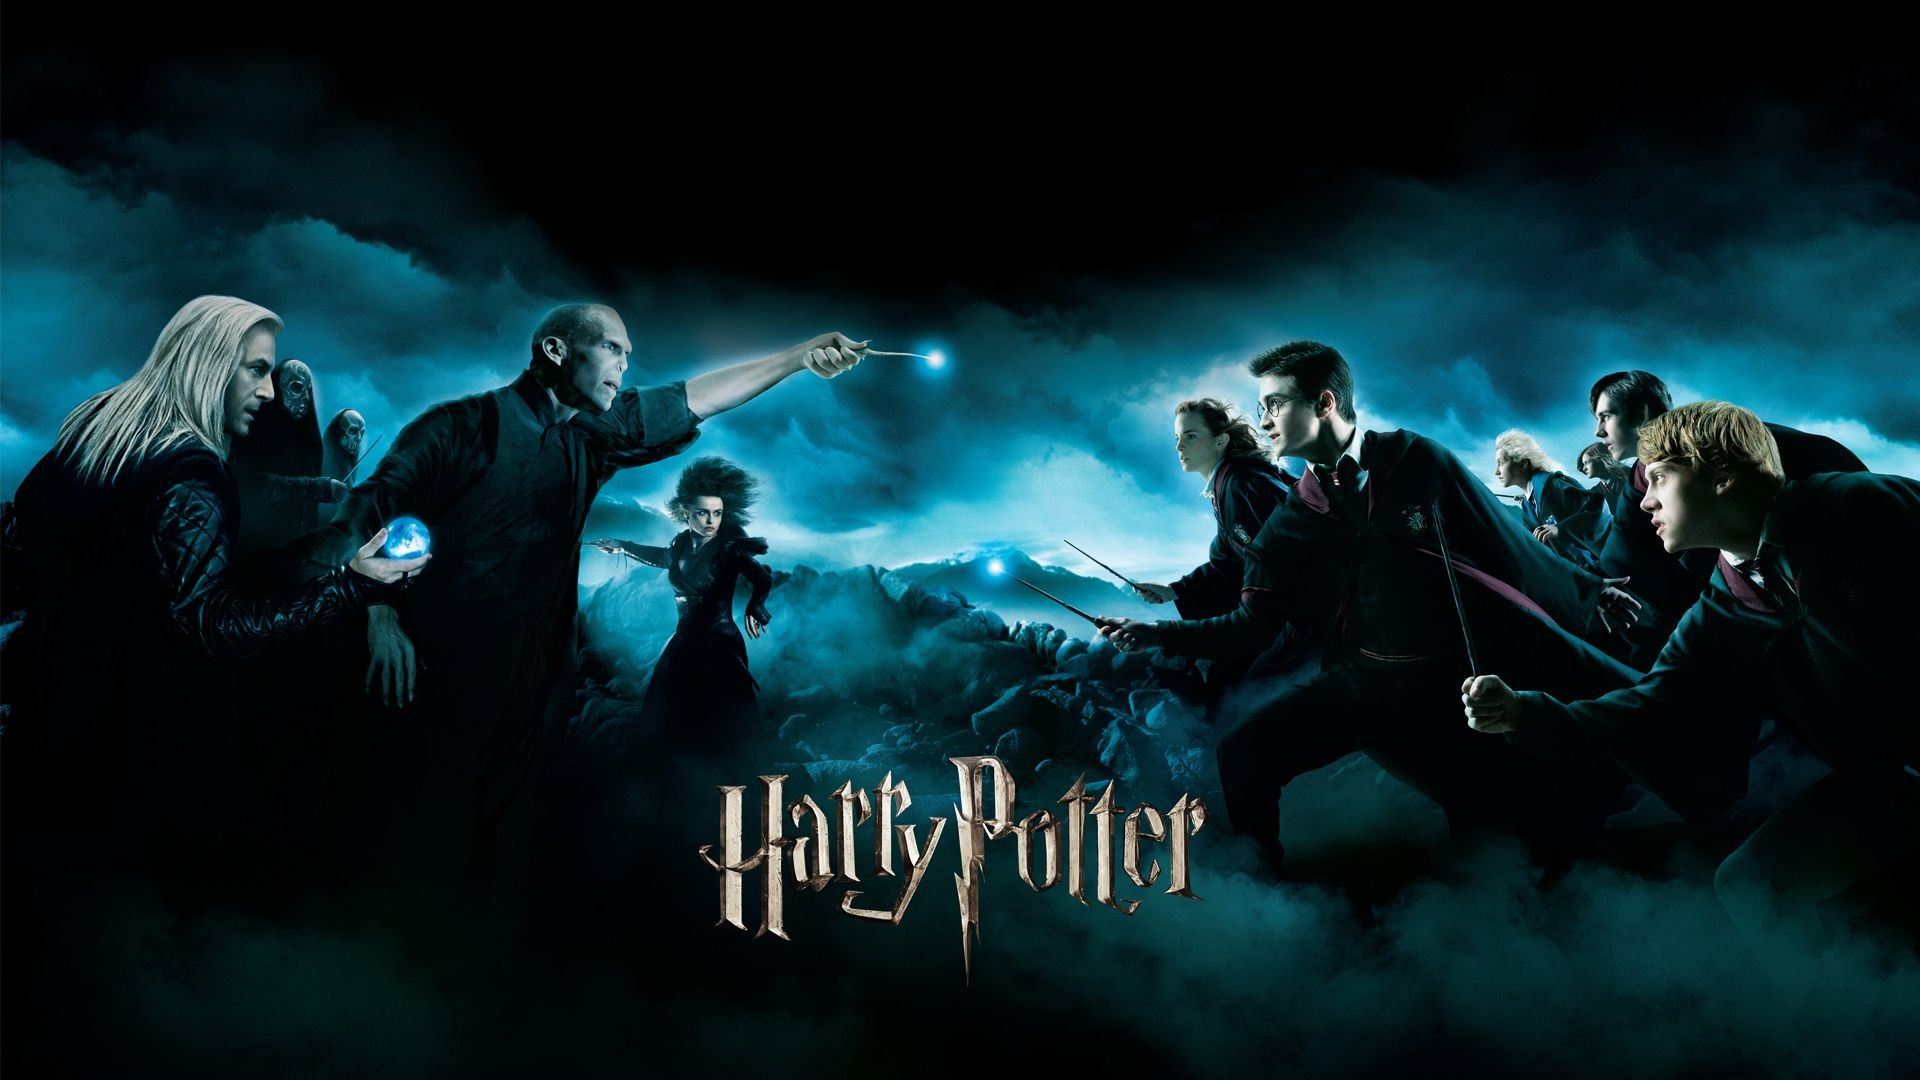 Harry Potter Wallpaper Hd Resolution For Wallpaper Harry 1920x1080